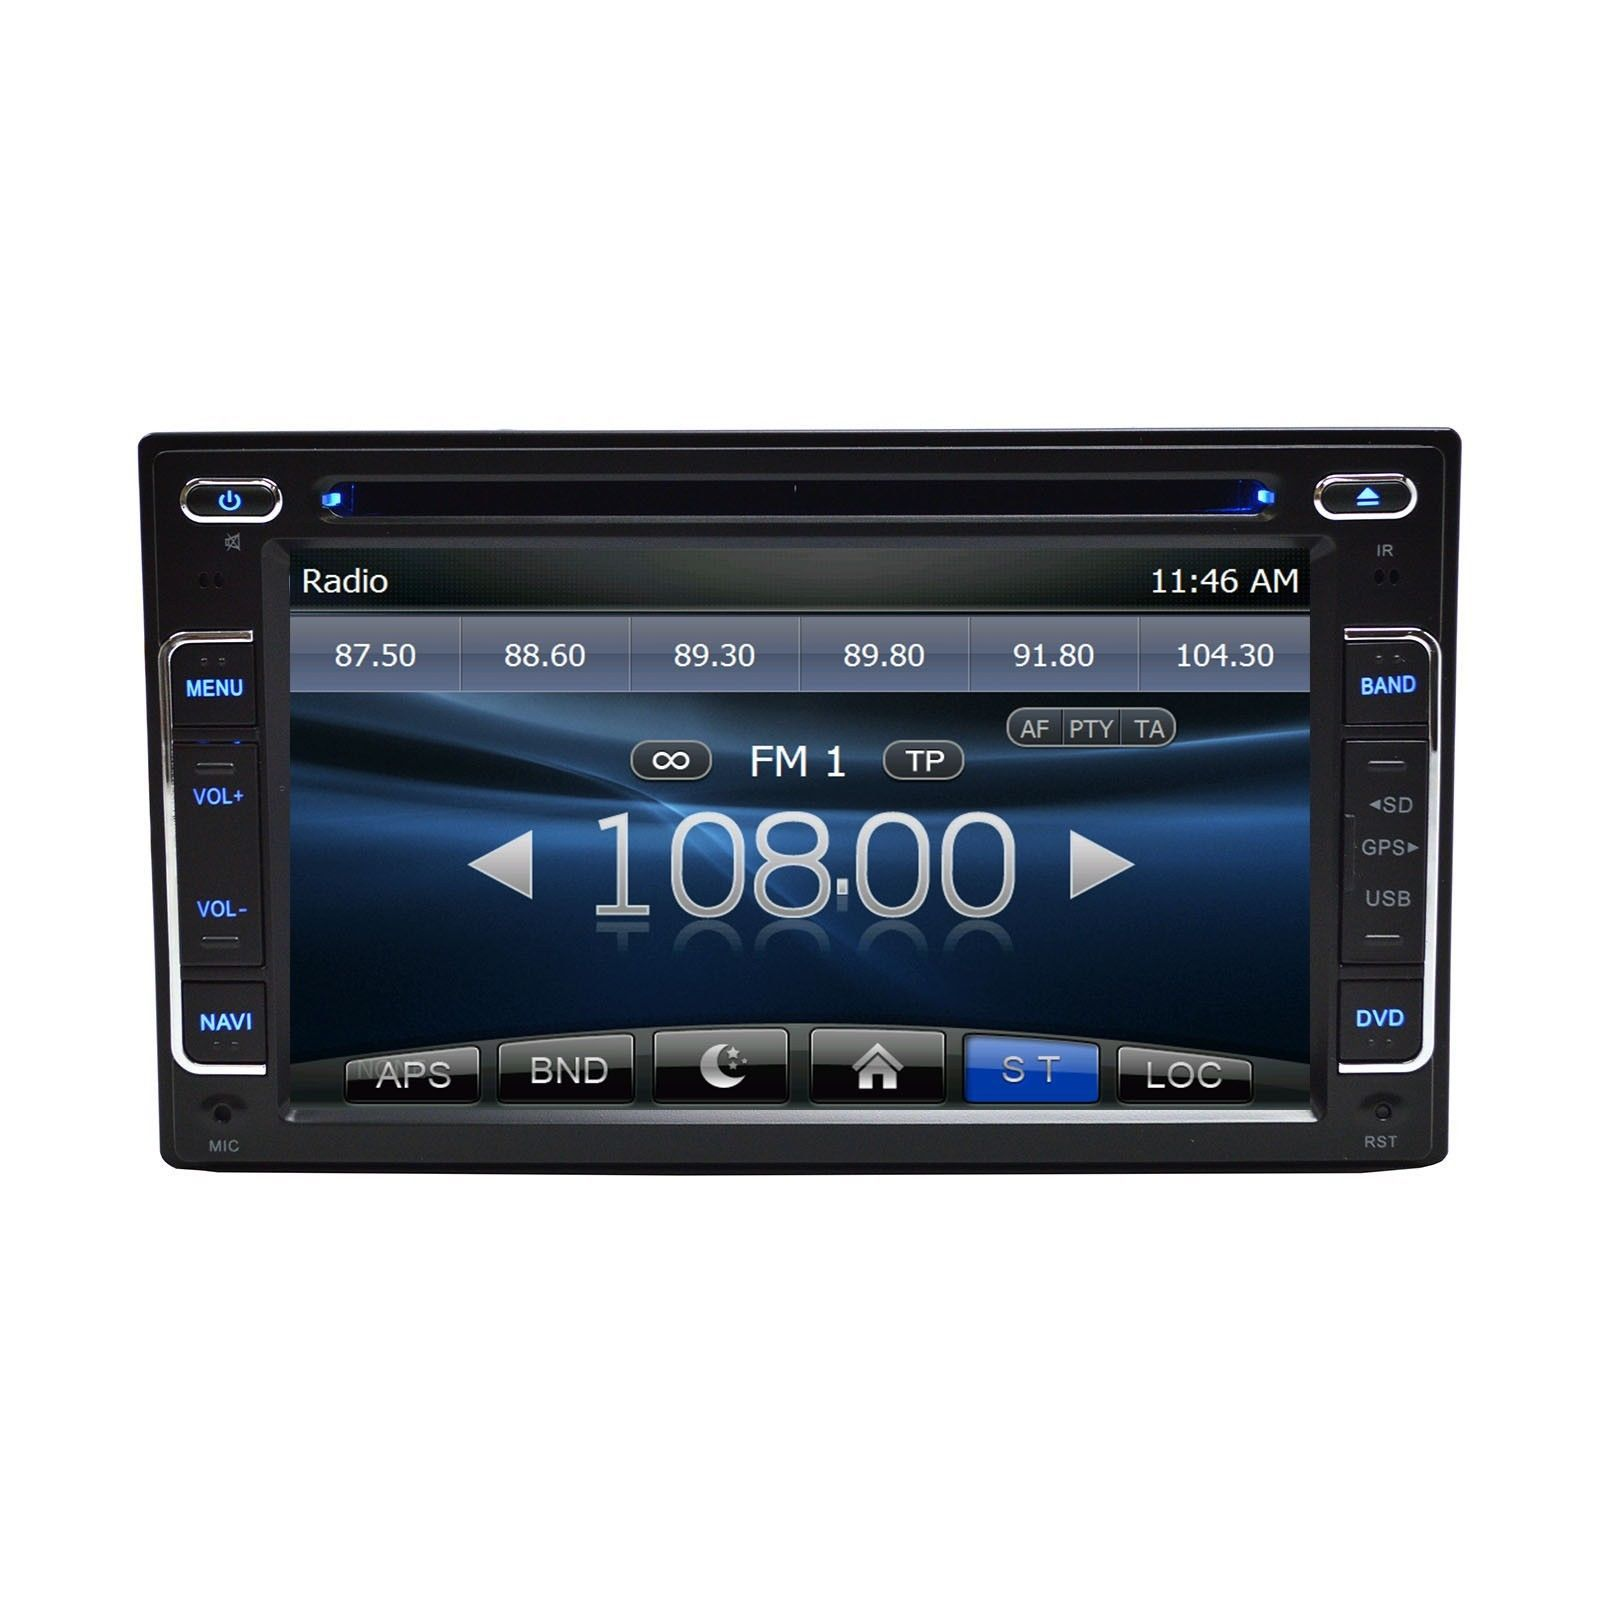 """6.2"""" DVD Navigation Touchscreen Multimedia Radio for 2012 Ford Taurus image 5"""